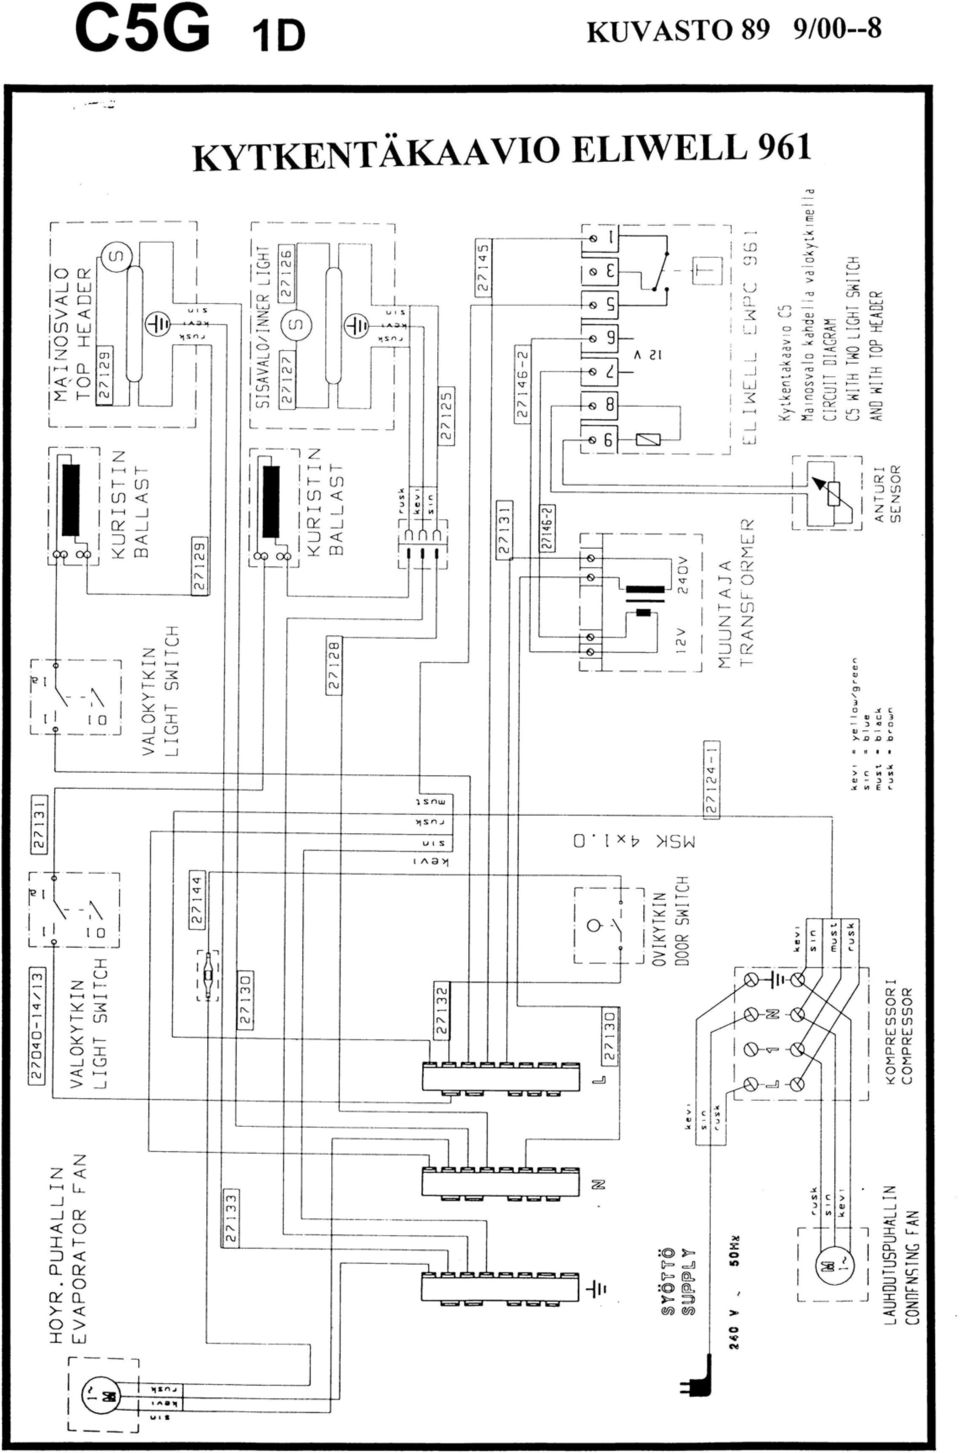 Whirlpool Oven Wiring Diagram For Rbs305pdb16 Trusted Schematics Appliances C5g Industrial Cooler Pdf